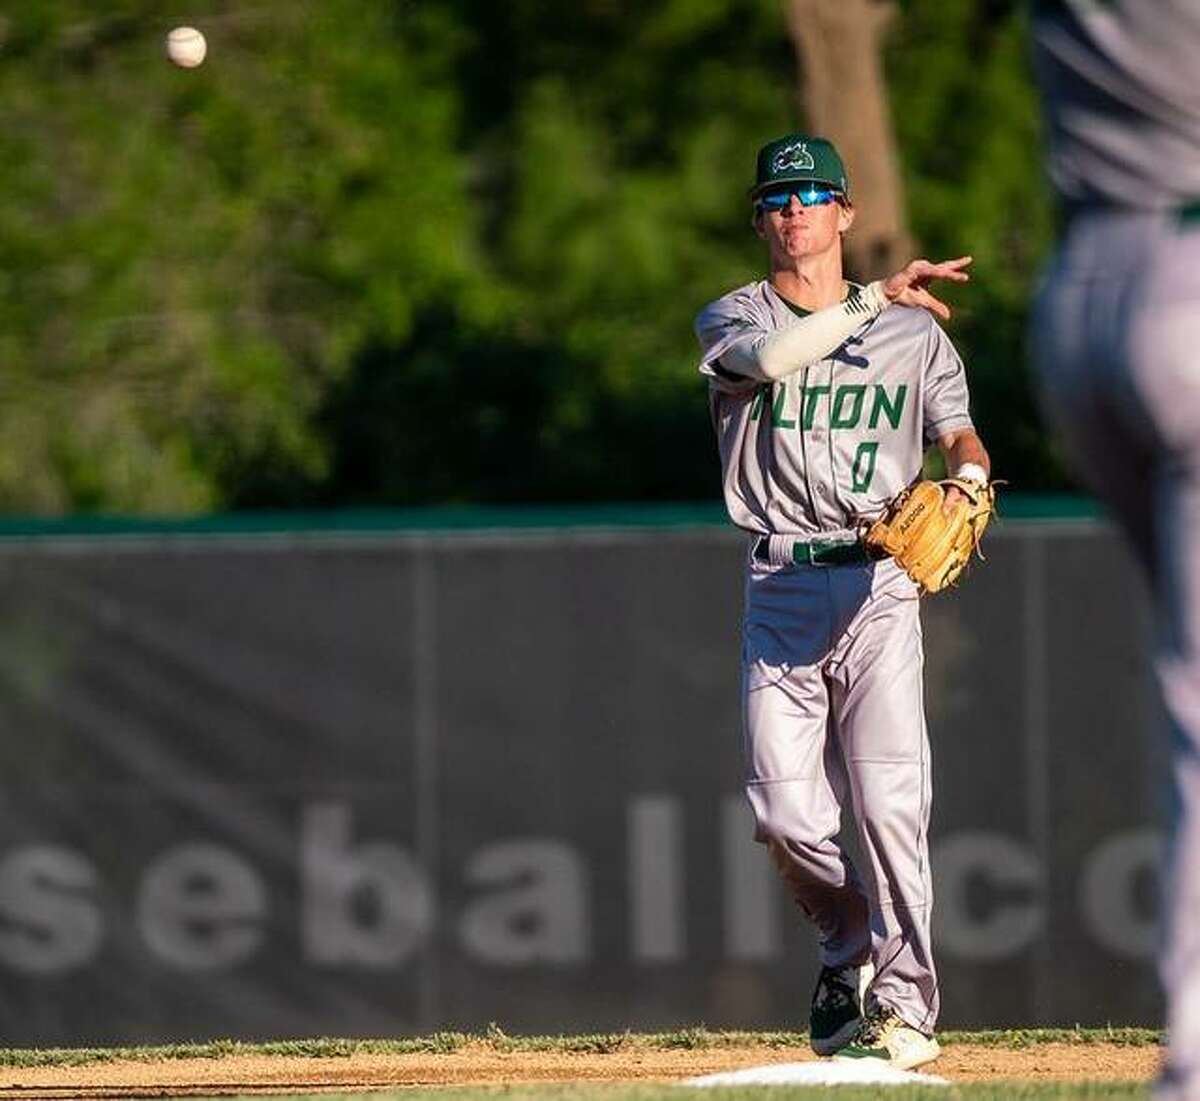 River Dragons second baseman Jake Rivers had a hit, an RBI, a walk and scored a run in Alton's 8-6 victory over the O'Fallon Hoots Sunday Night at CarShield Field in O'Fallon, Mo.